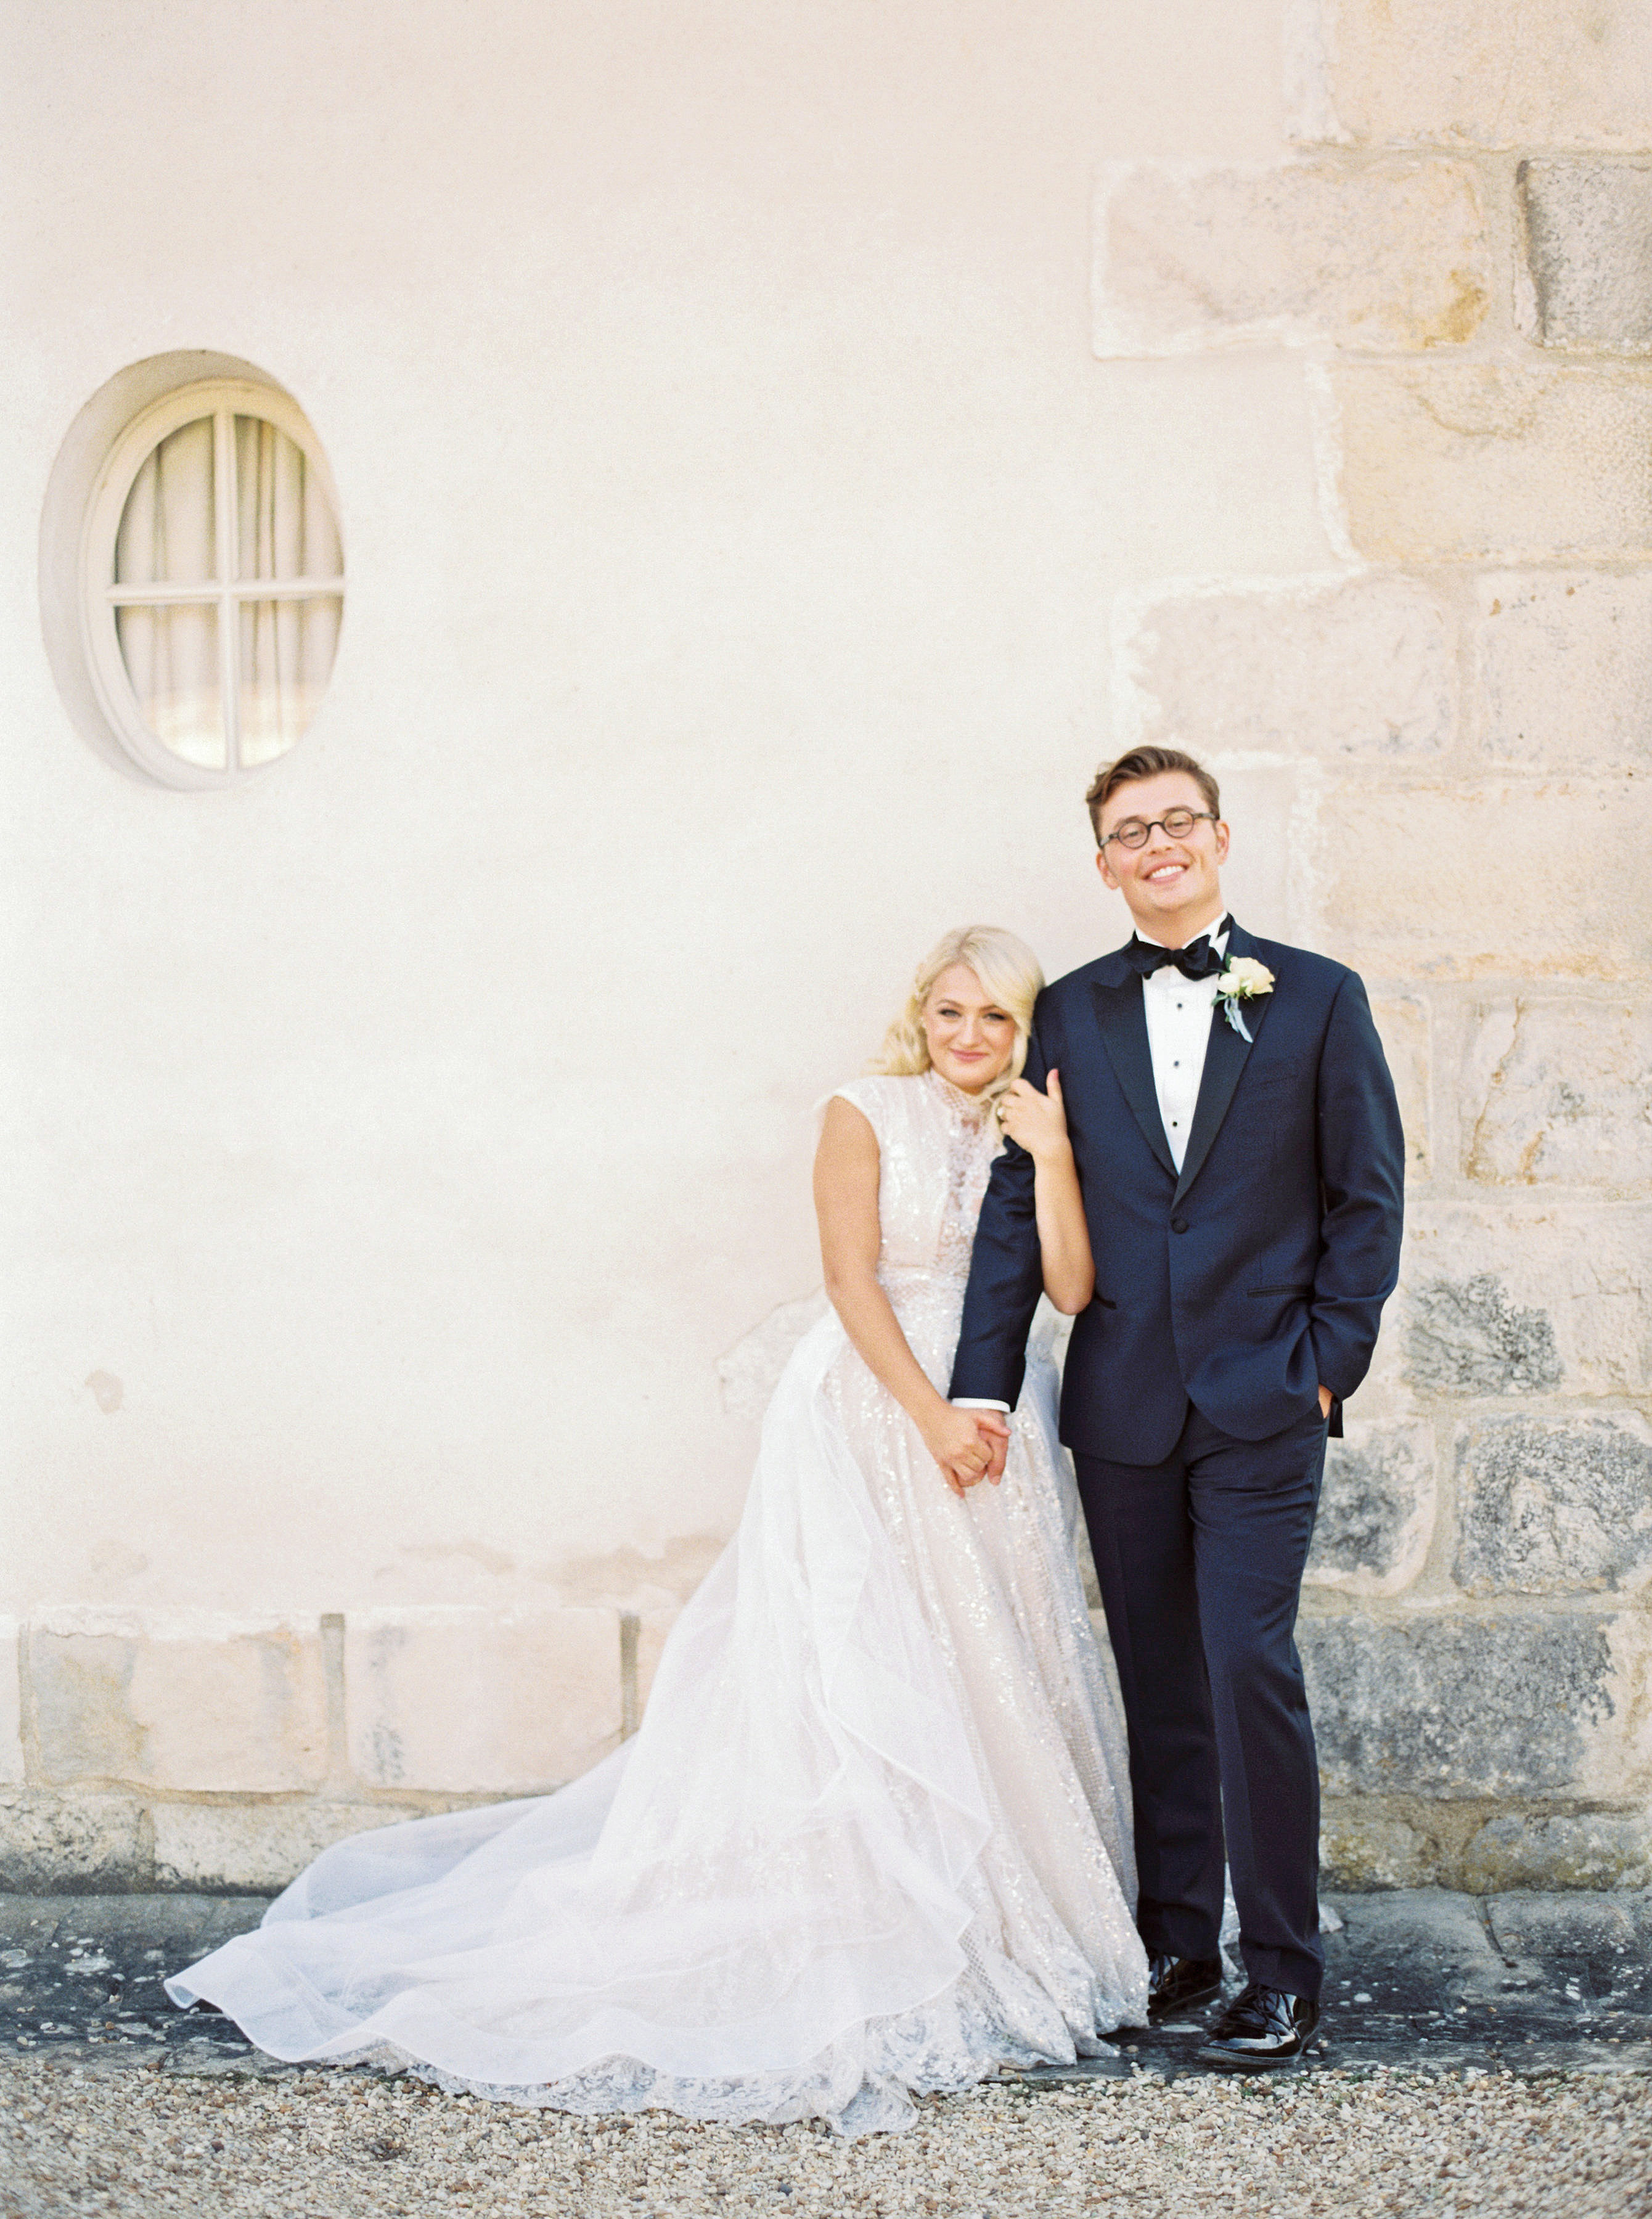 rachael cameron wedding couple in front of wall